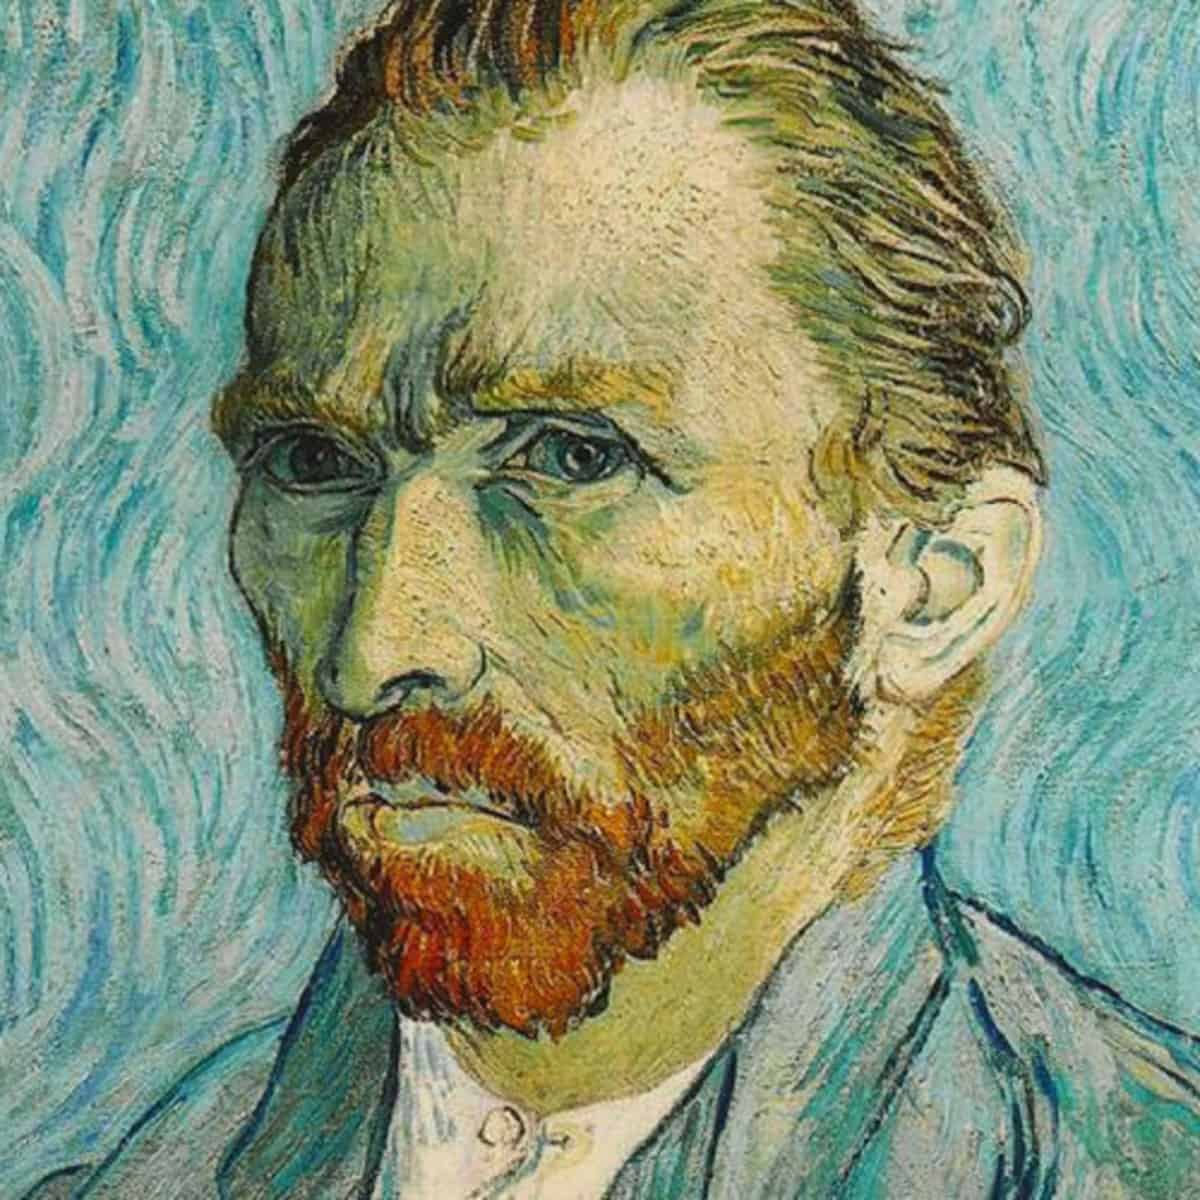 Vincent Van Gogh - Tormented Dutch Artist. 15 Things You Didn - ;t Know About Vincent Van Gogh